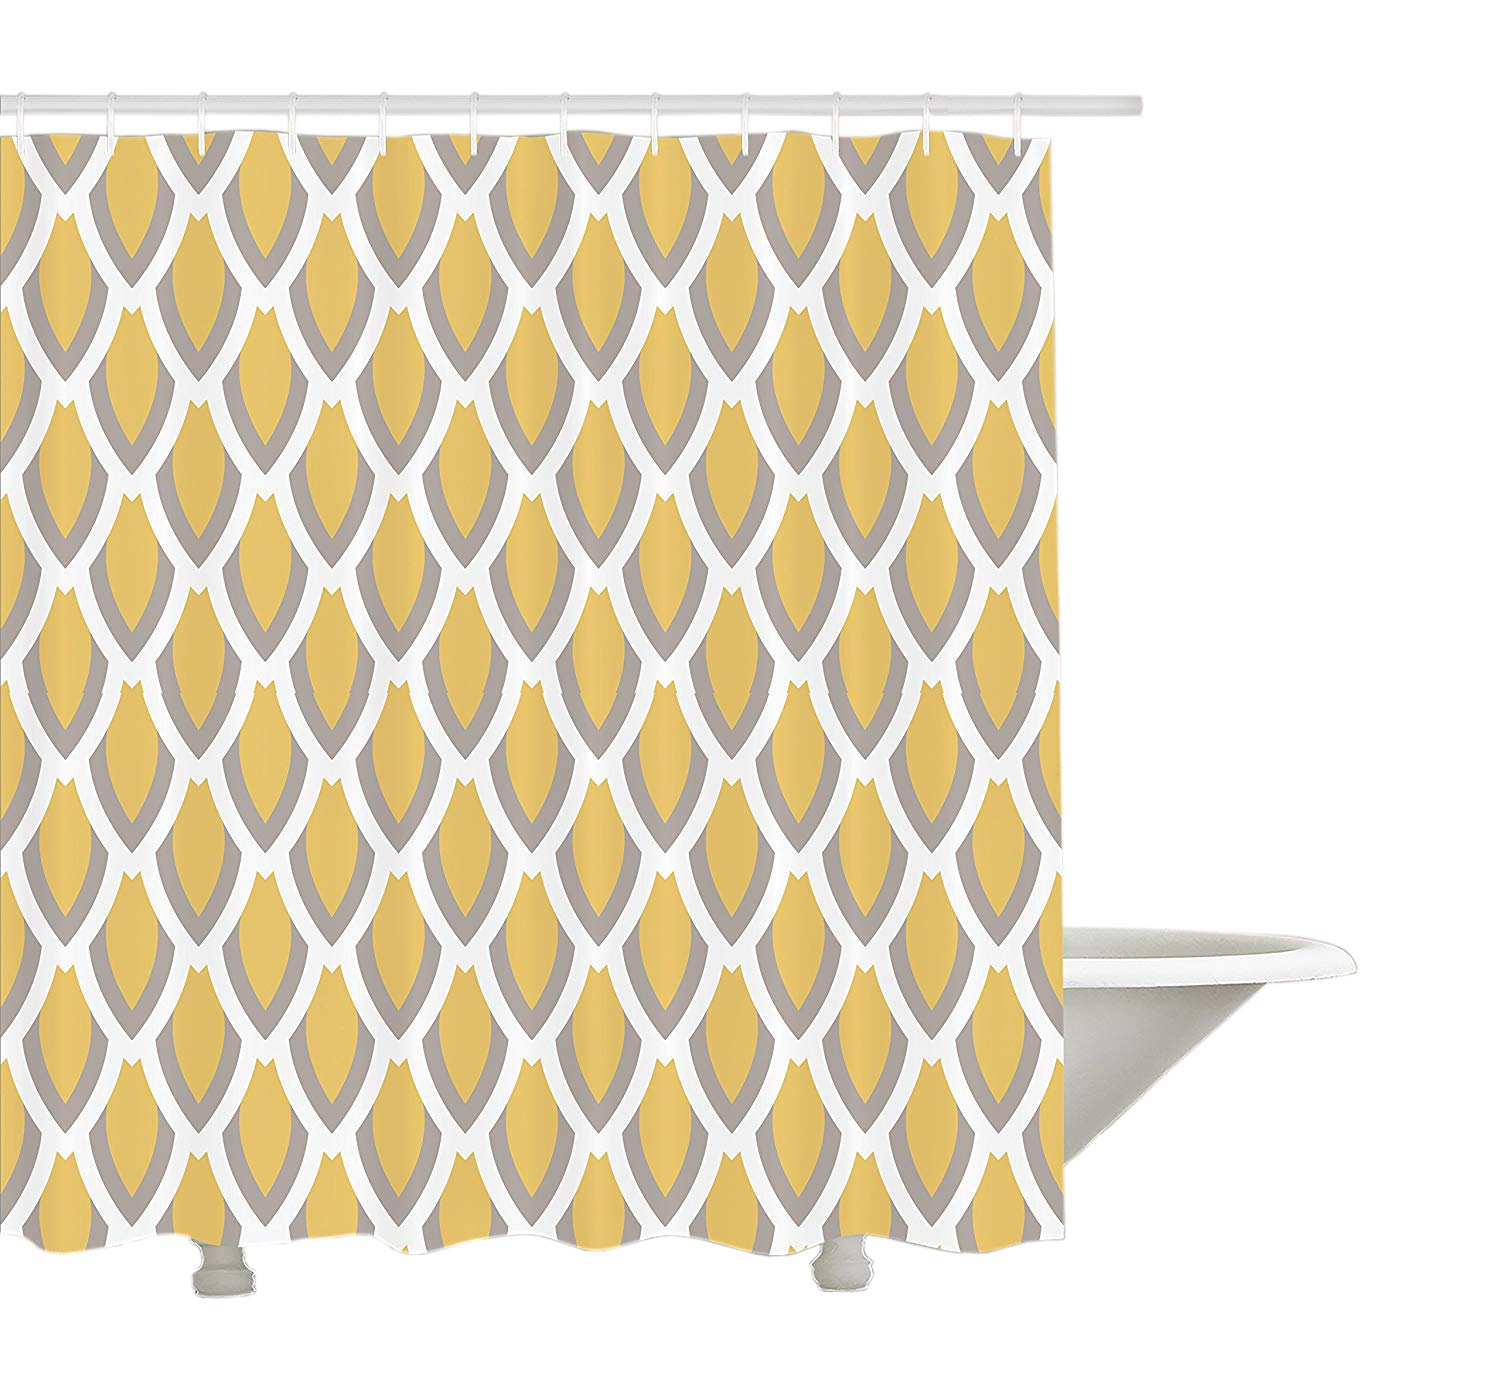 Yeuss Mustard Shower Curtain By Vintage Inspired Downward Leaf